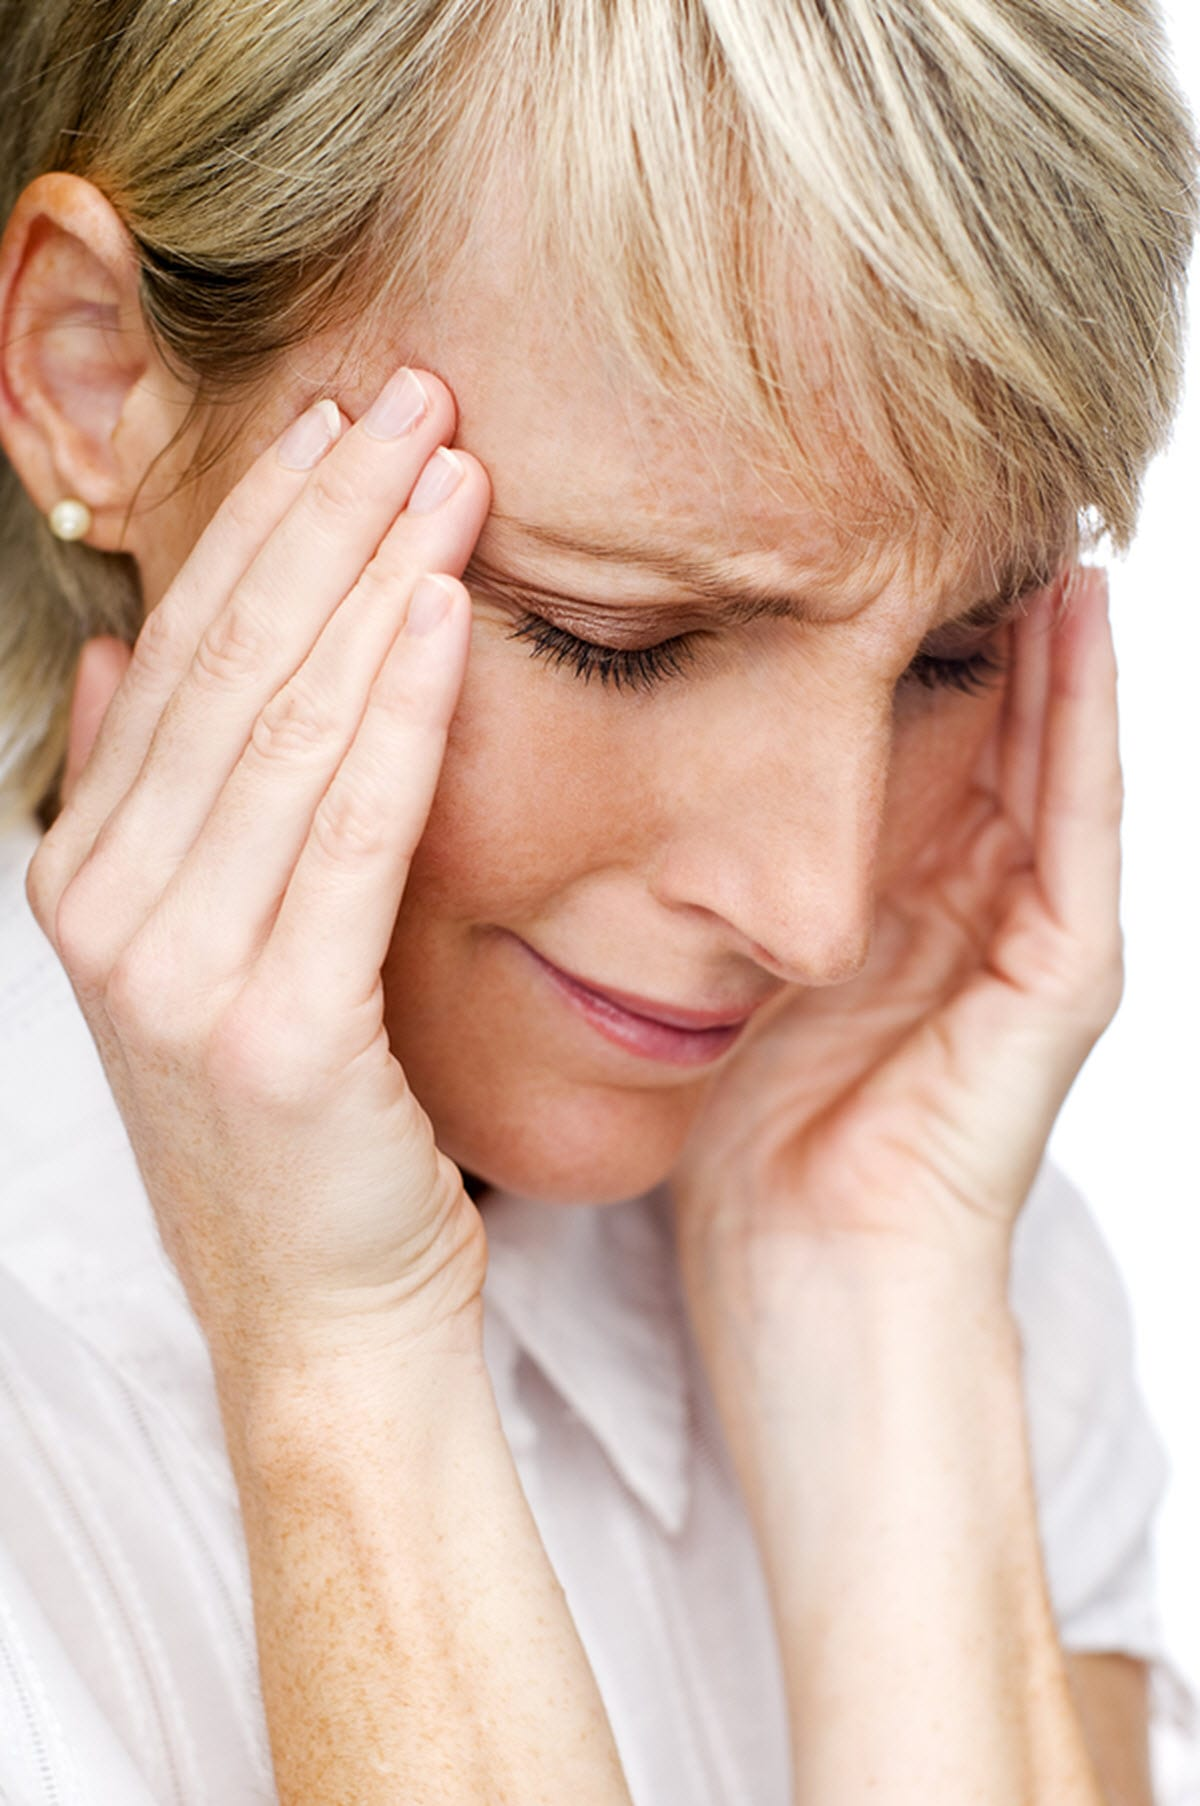 Homecare in Oceanside CA: What to Do about Worry